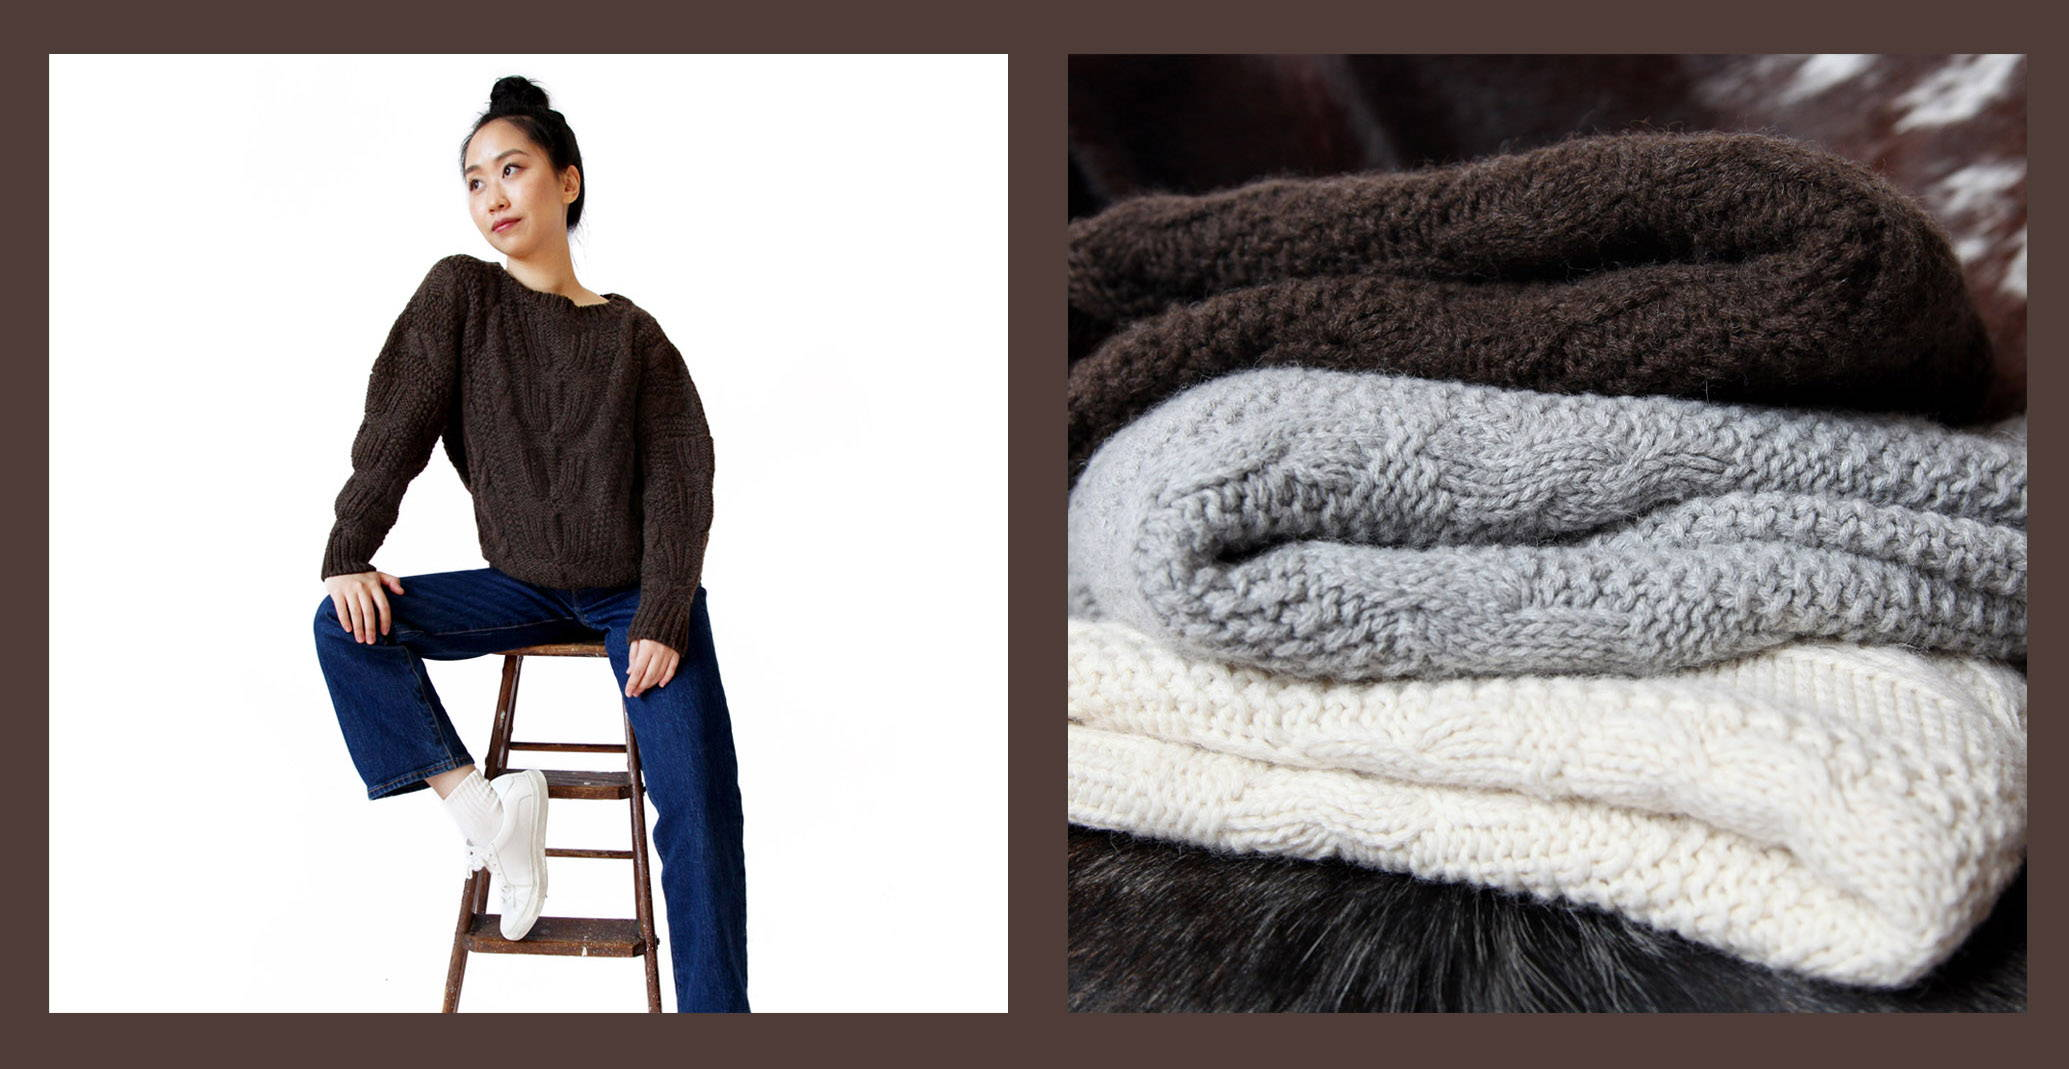 Stick & Ball Alpaca Sarah Cable Knit Sweaters in chocolate/brown, silver grey & cream